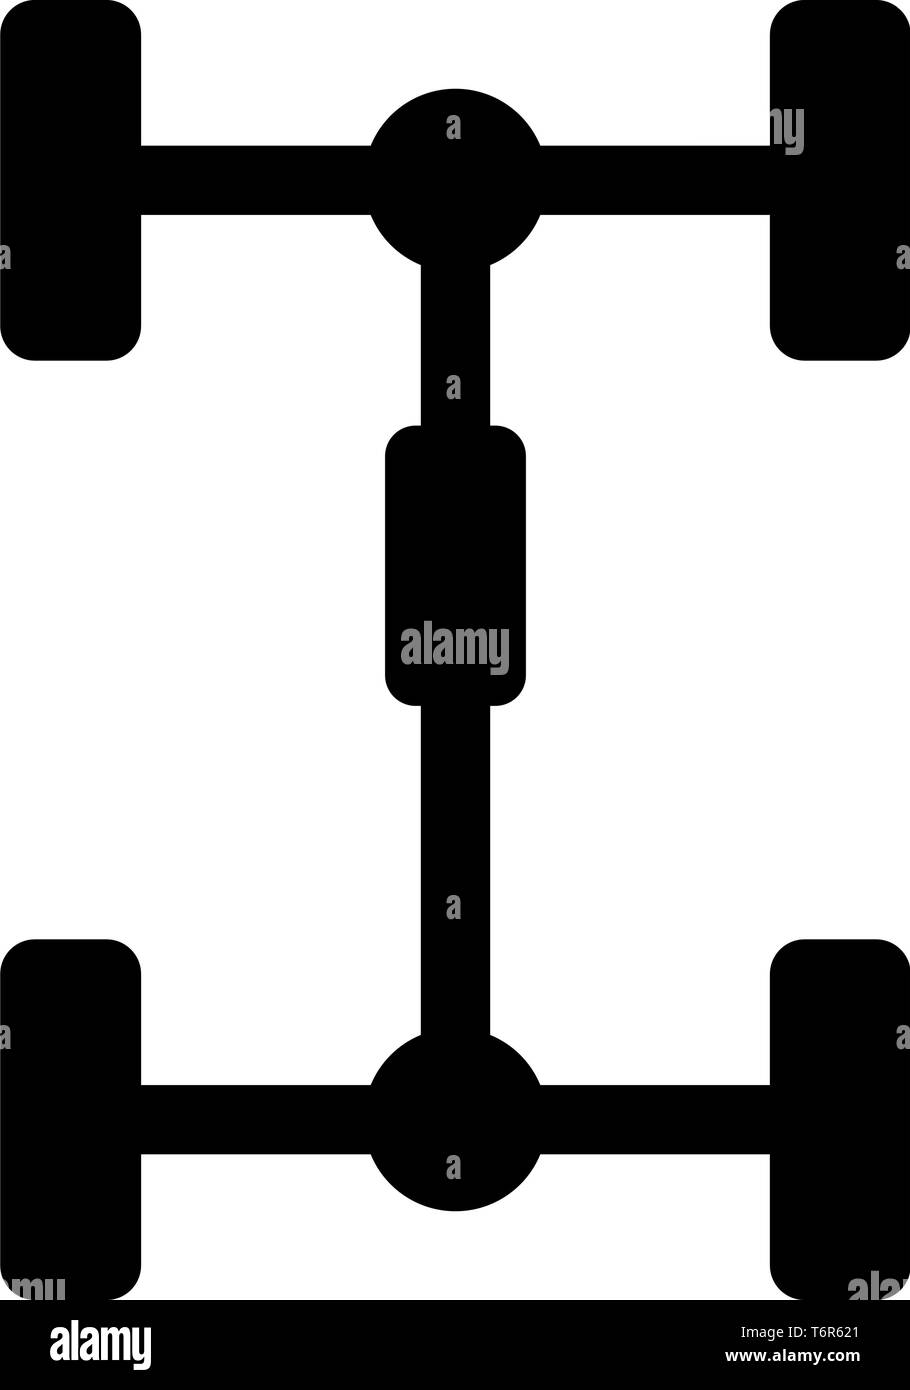 Undercarriage Chassis Carriage for car Vehicle frame icon black color vector illustration flat style simple image - Stock Image